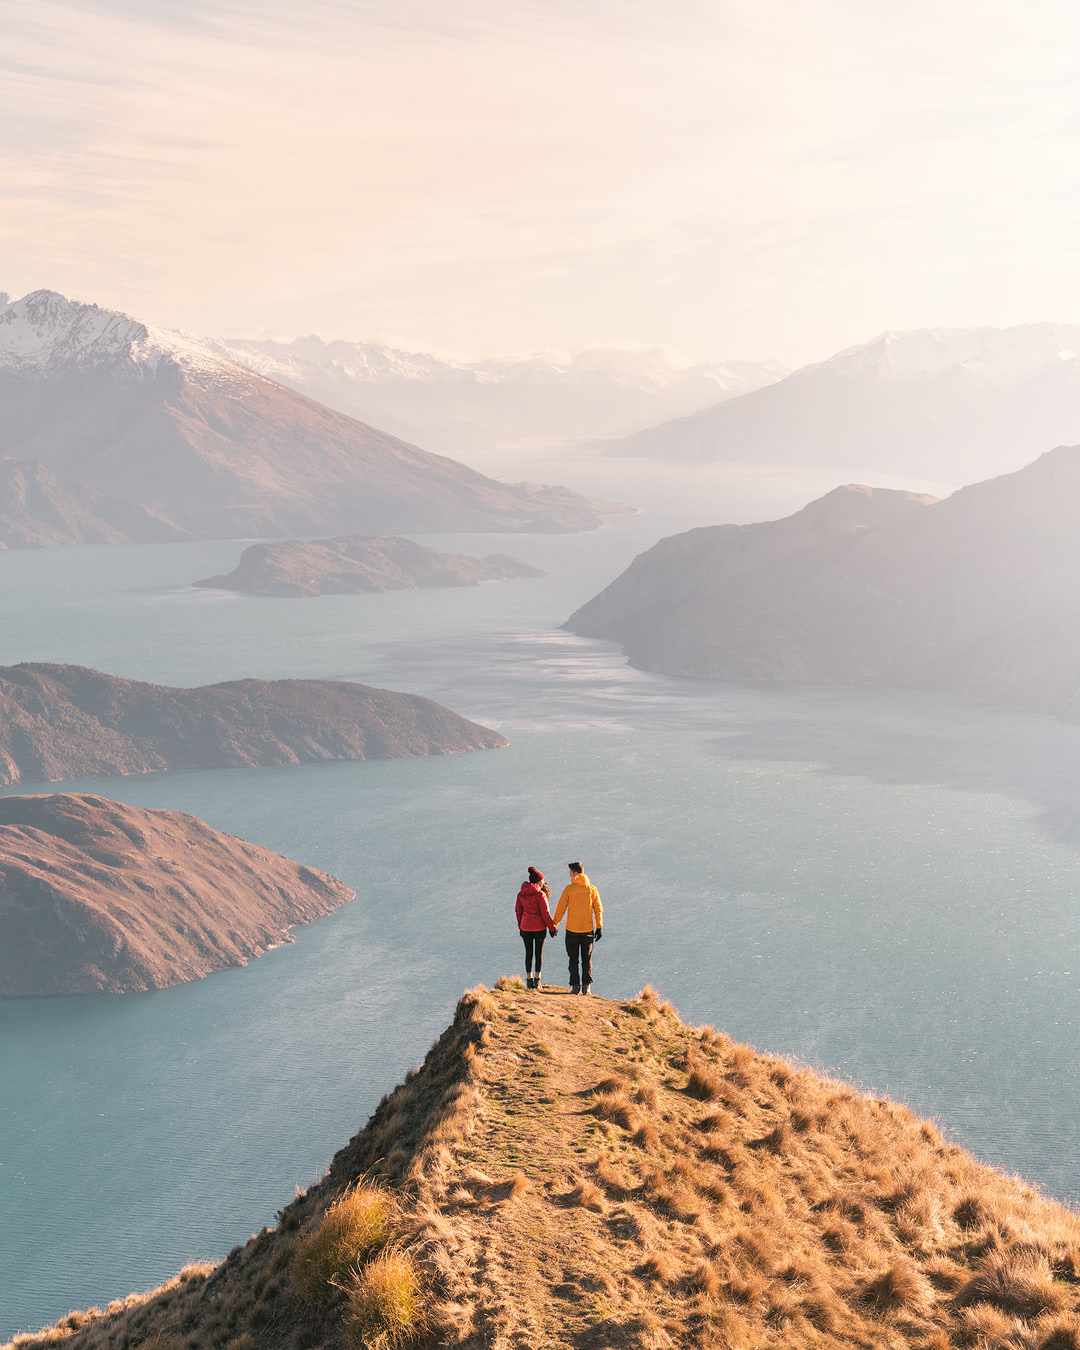 12 MUST SEE PLACES ON THE SOUTH ISLAND OF NEW ZEALAND - ROYS PEAK WANAKA